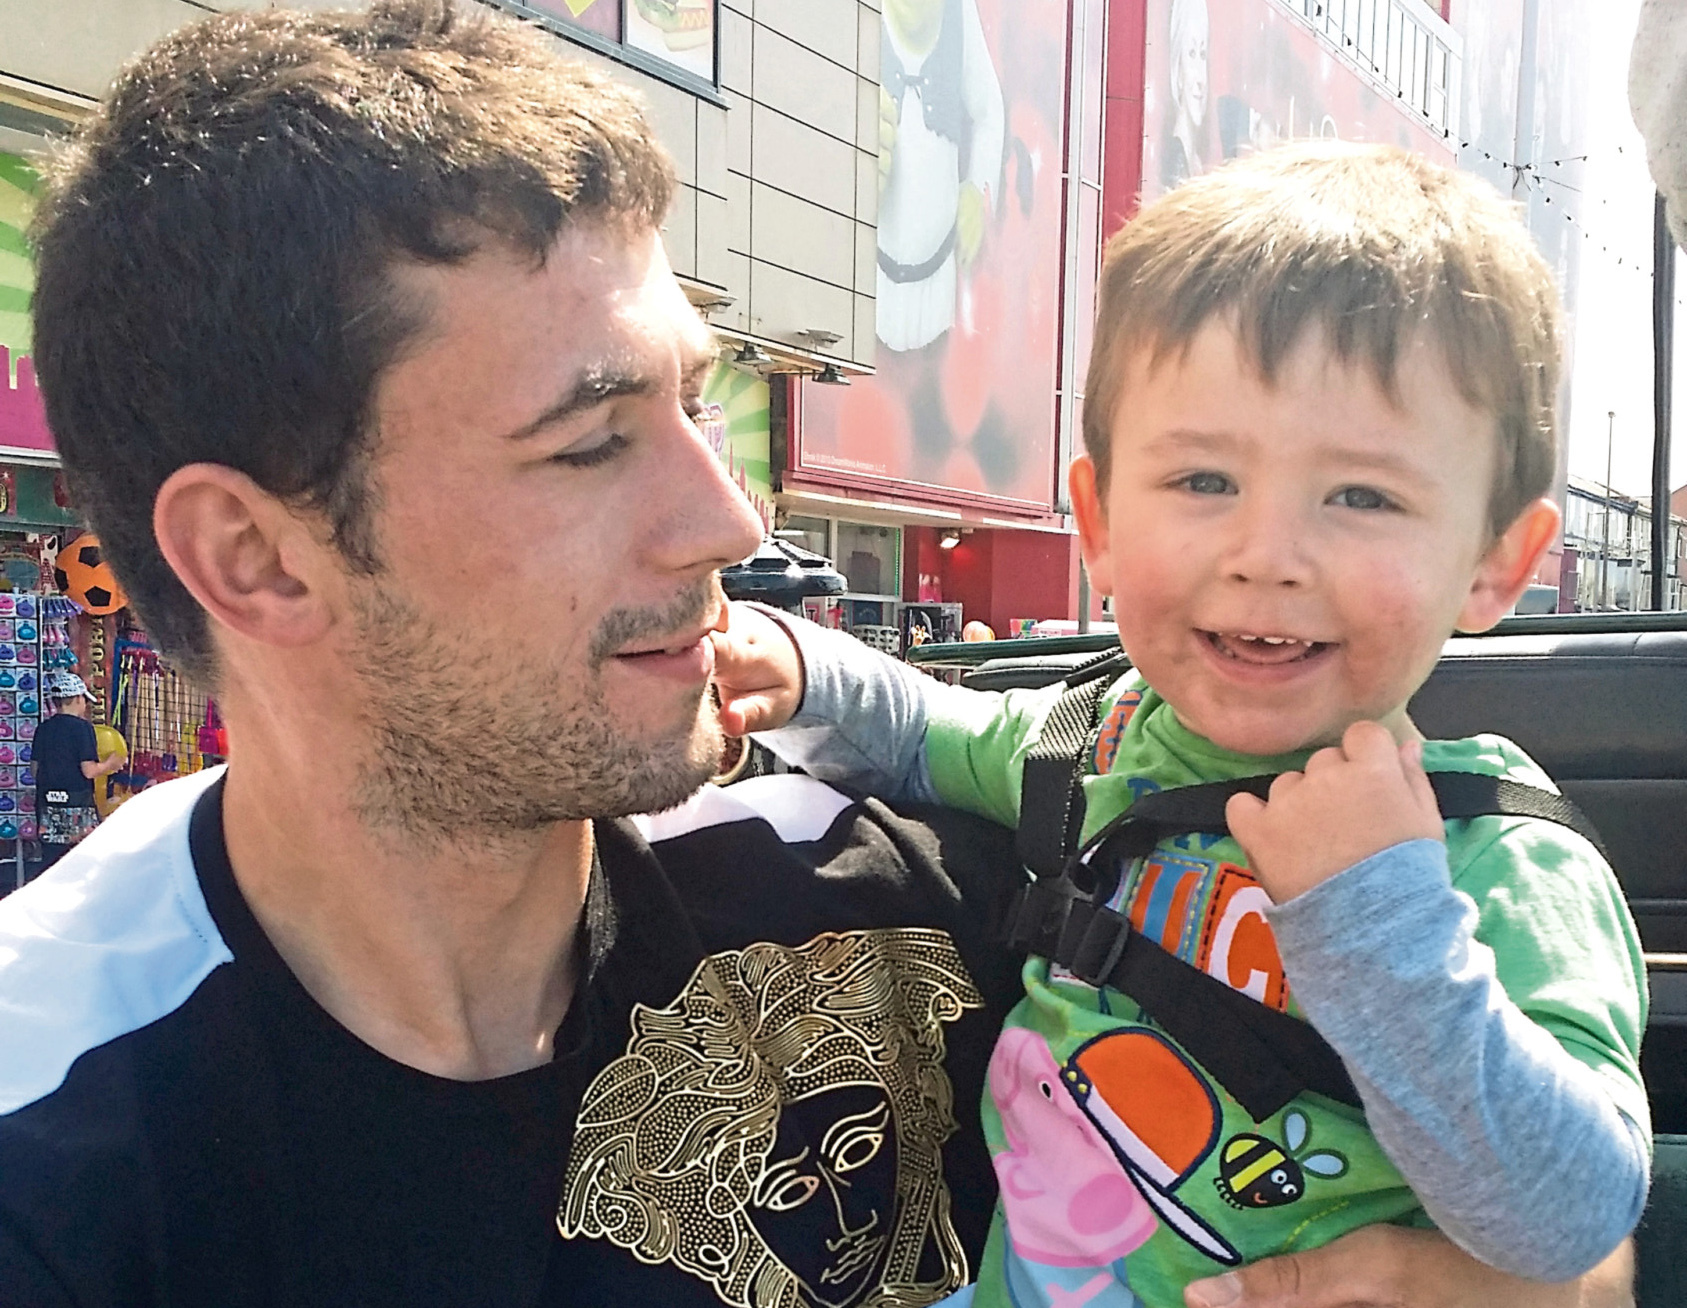 Robert Reid, picturedwith his son, died after being attacked by his friend Darren Riley